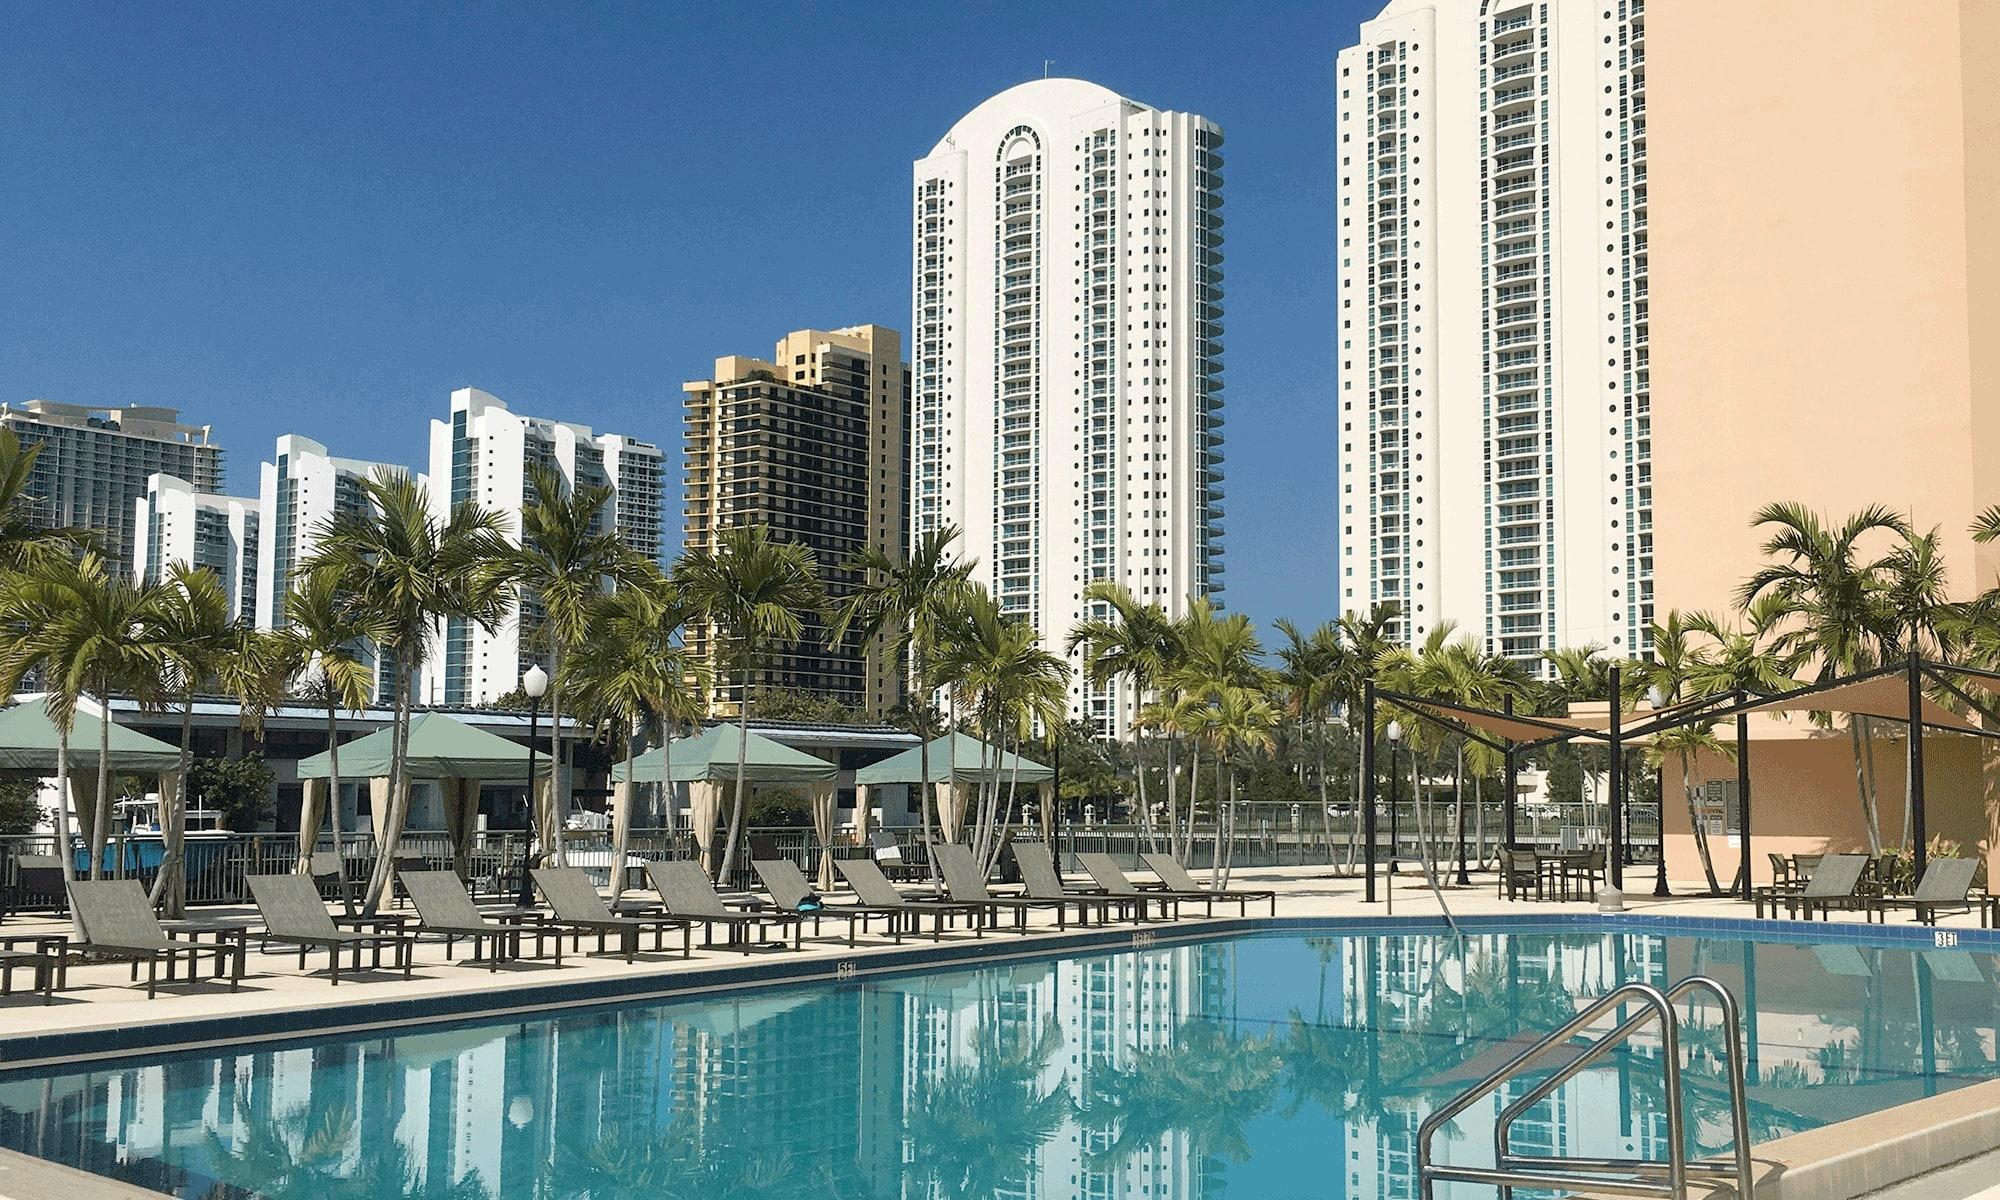 Apartments in Sunny Isles Beach, FL